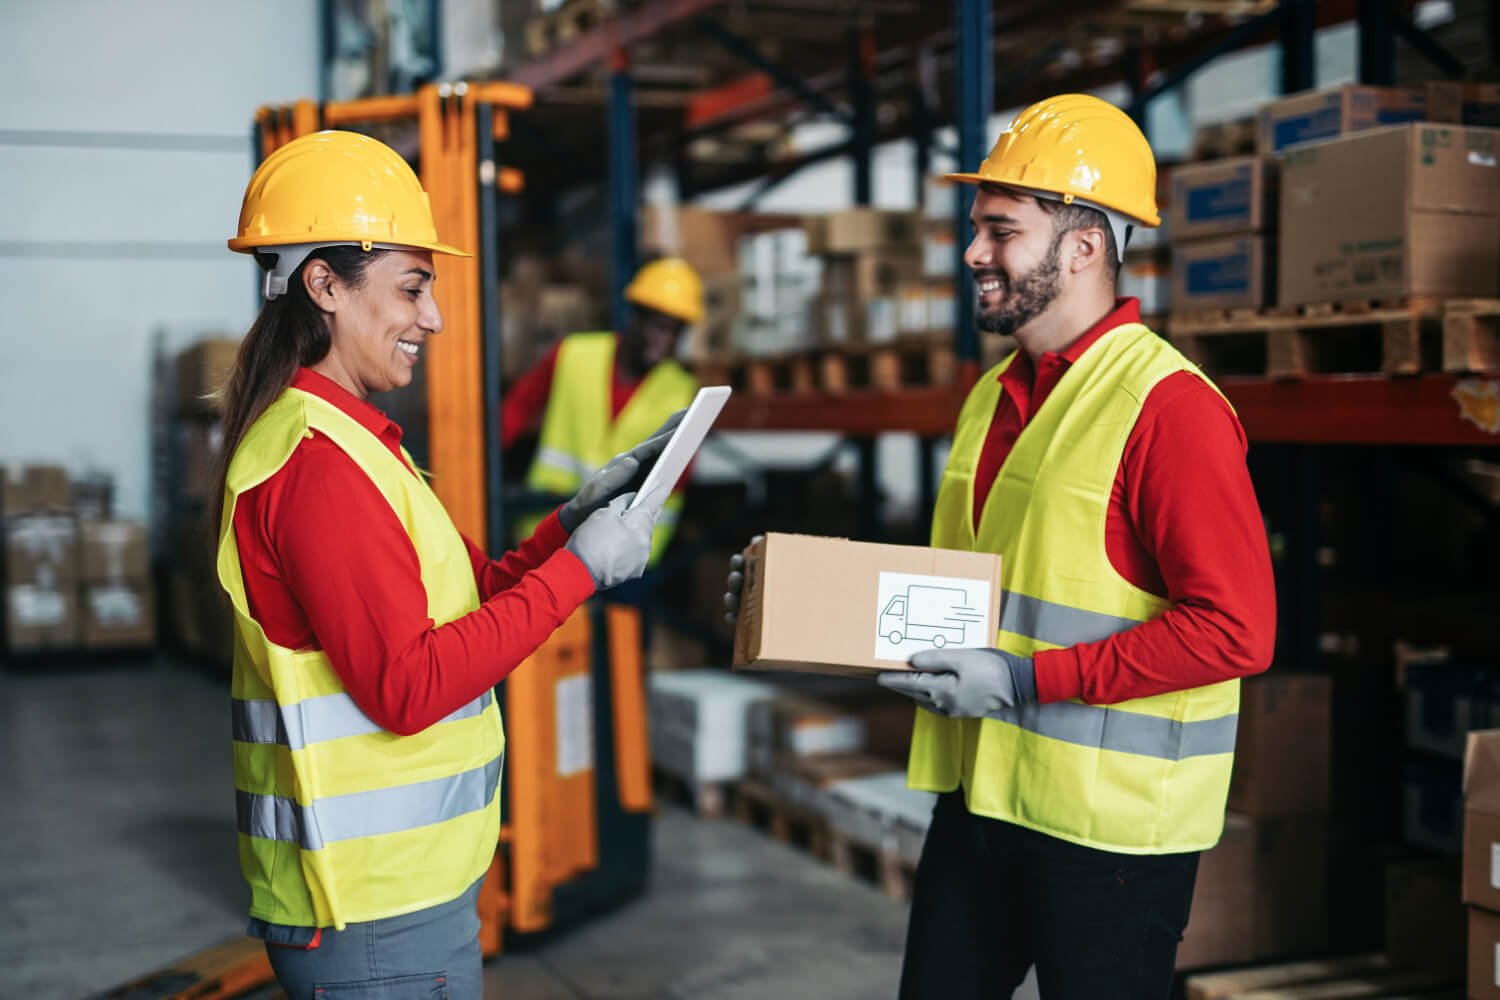 Multiracial warehouse worker with package and digital tablet